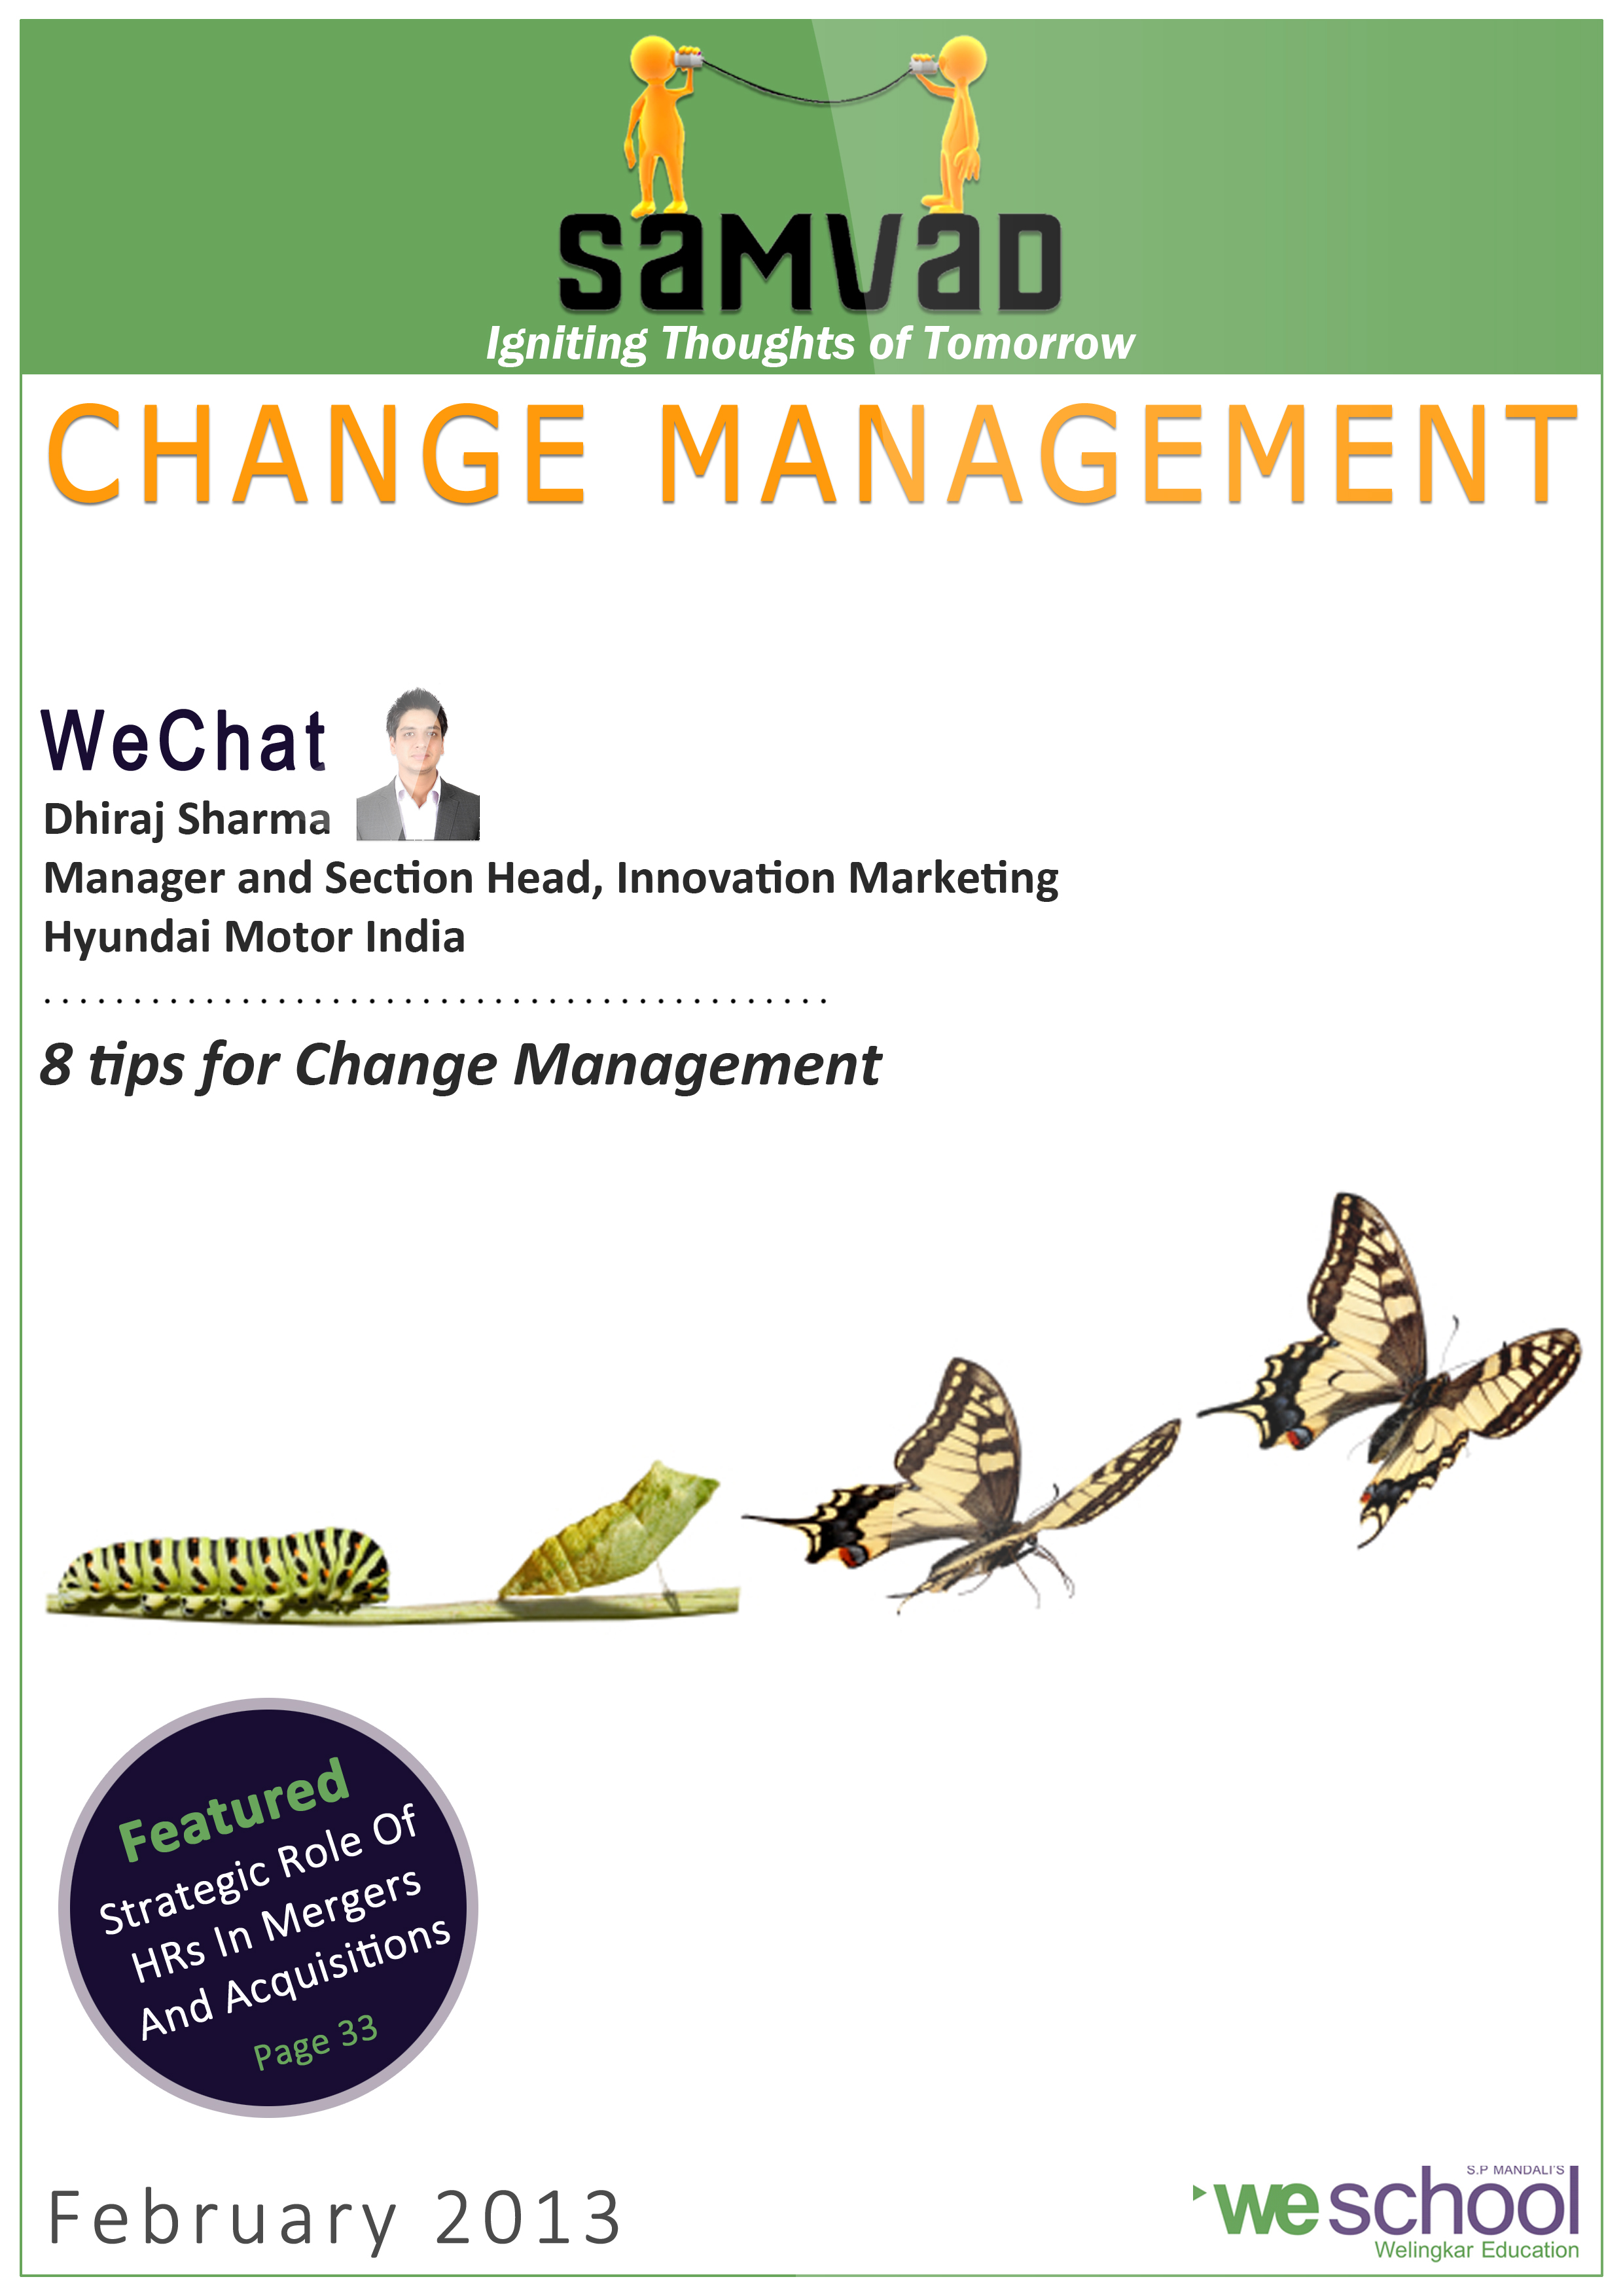 Change Management,in the first anniversary issue of Samvad...